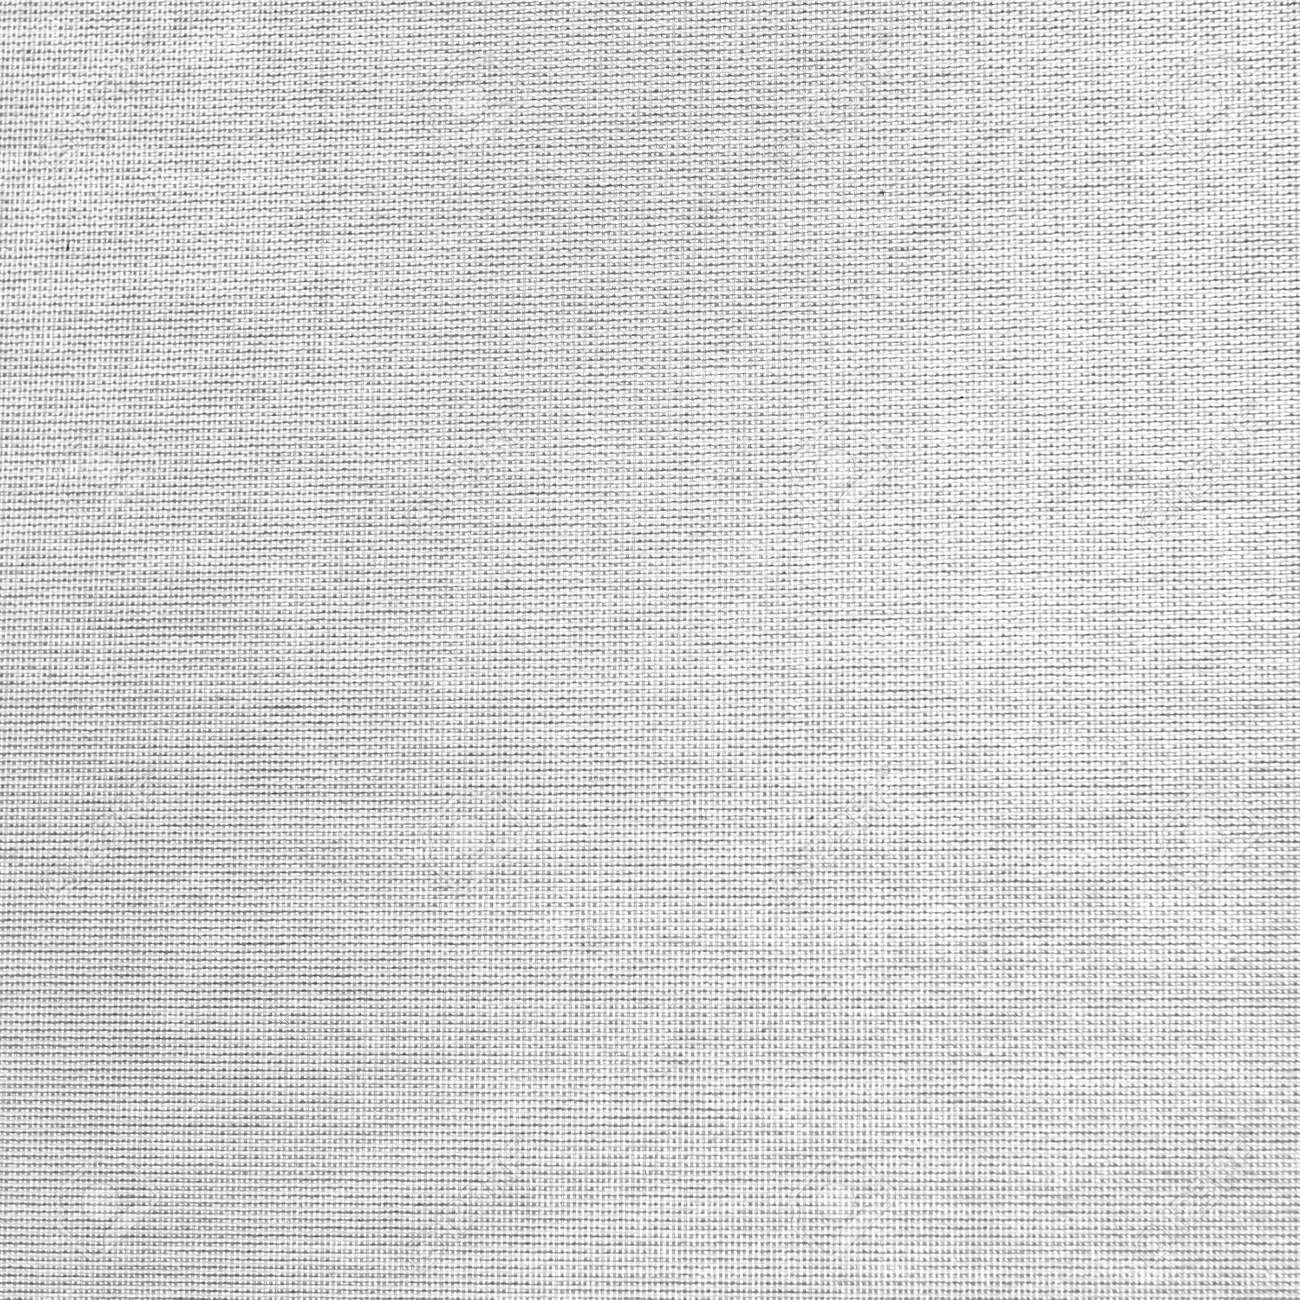 old canvas texture background with delicate stripes pattern Stock Photo - 16520138